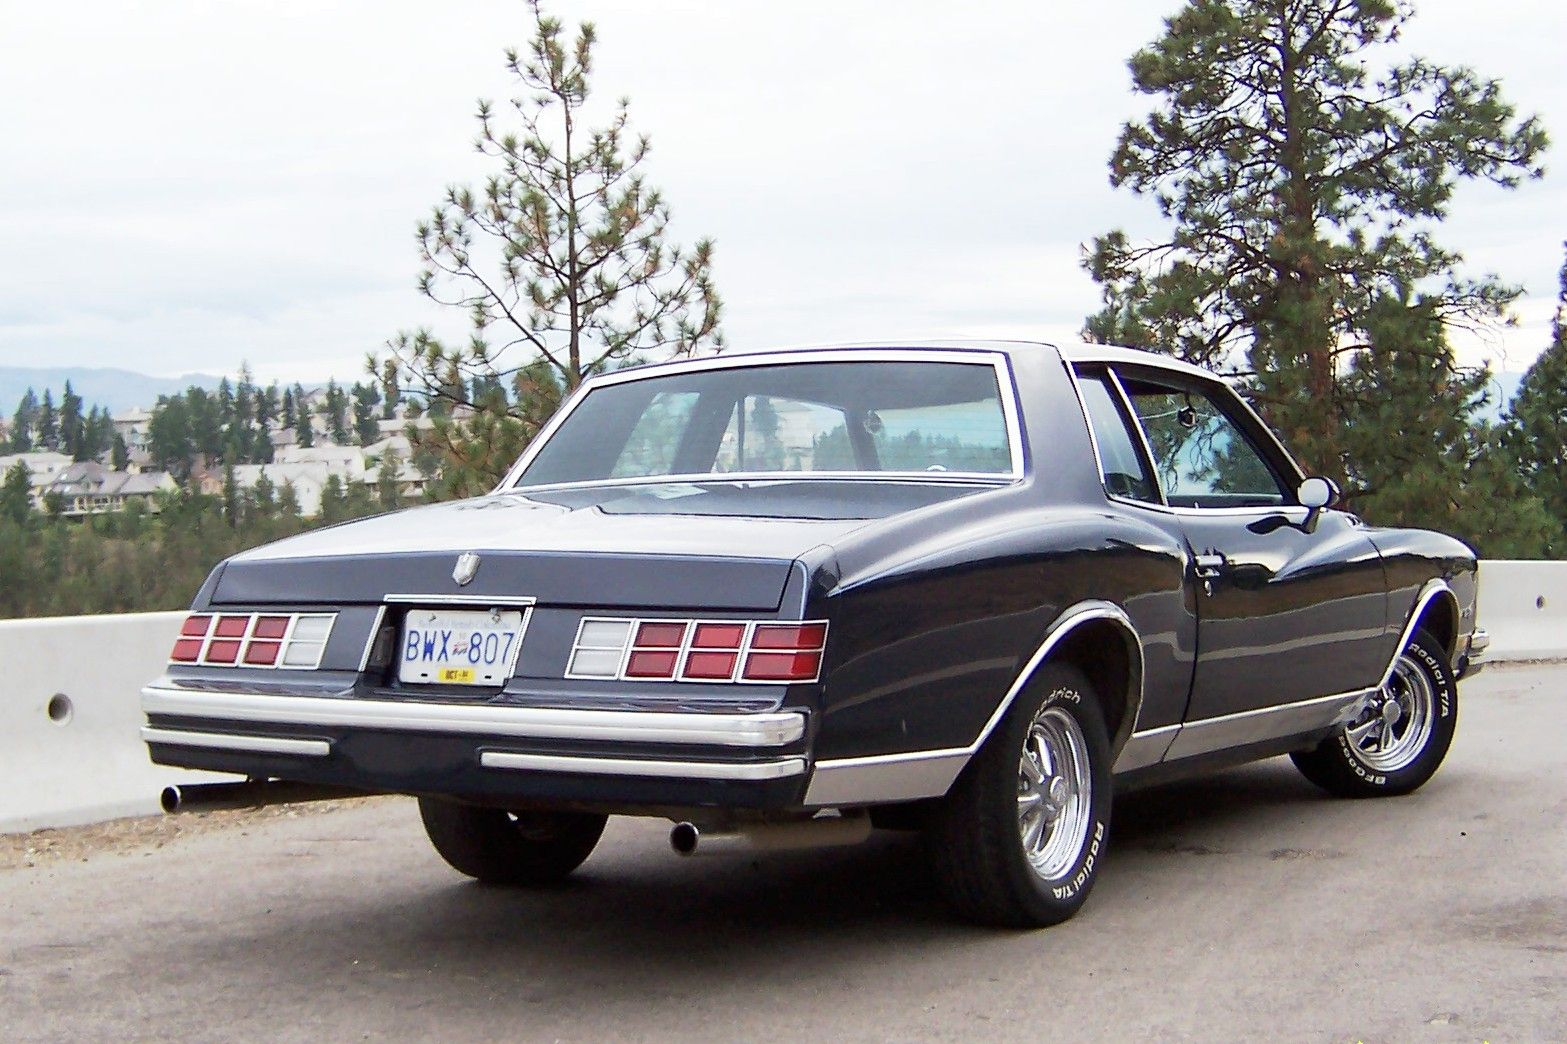 1980 Chevrolet Monte Carlo My Aunt Had A Monte Carlo Back Then And It Was Black Like This One She Always Chevrolet Monte Carlo Chevy Monte Carlo Monte Carlo